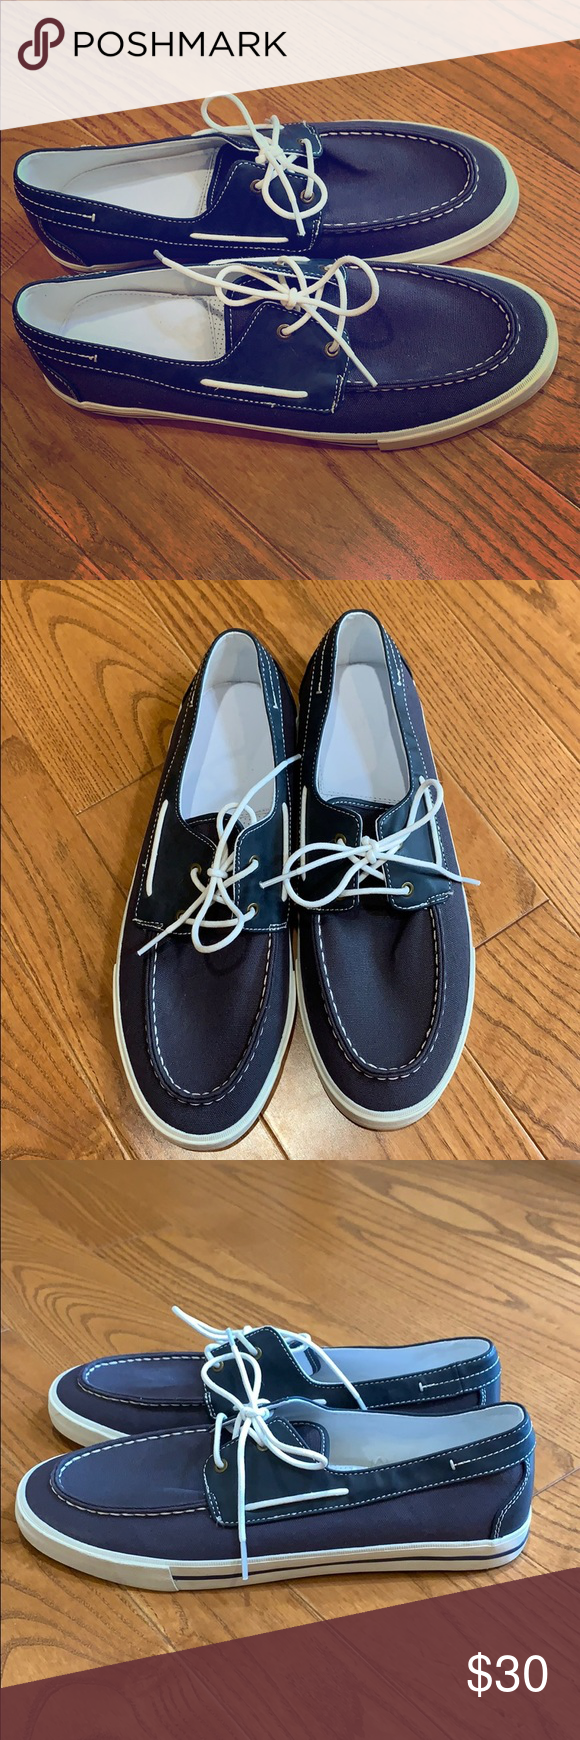 👞 Men's GAP Shoes 👞 BRAND NEW These Men's boat shoes are perfect for summer time on the boat or for a picnic. These were never worn and is in great condition as shown by the photos. Can be worn with or without socks.  #Father'sDay #Anniversary #Boyfriend #Fiance #Valentine'sDay #Gift #Husband #Brother #Dad #Son #Eid #Ramadan #Sale #Run #Comfortable #Style #LowPrice #NewWardrobe #Vacation #WalkingShoes #RunningShoes #WeddingShoes #PartyShoes #ShoesWithLaces #Guys #Boys GAP Shoes Loafers & Slip-